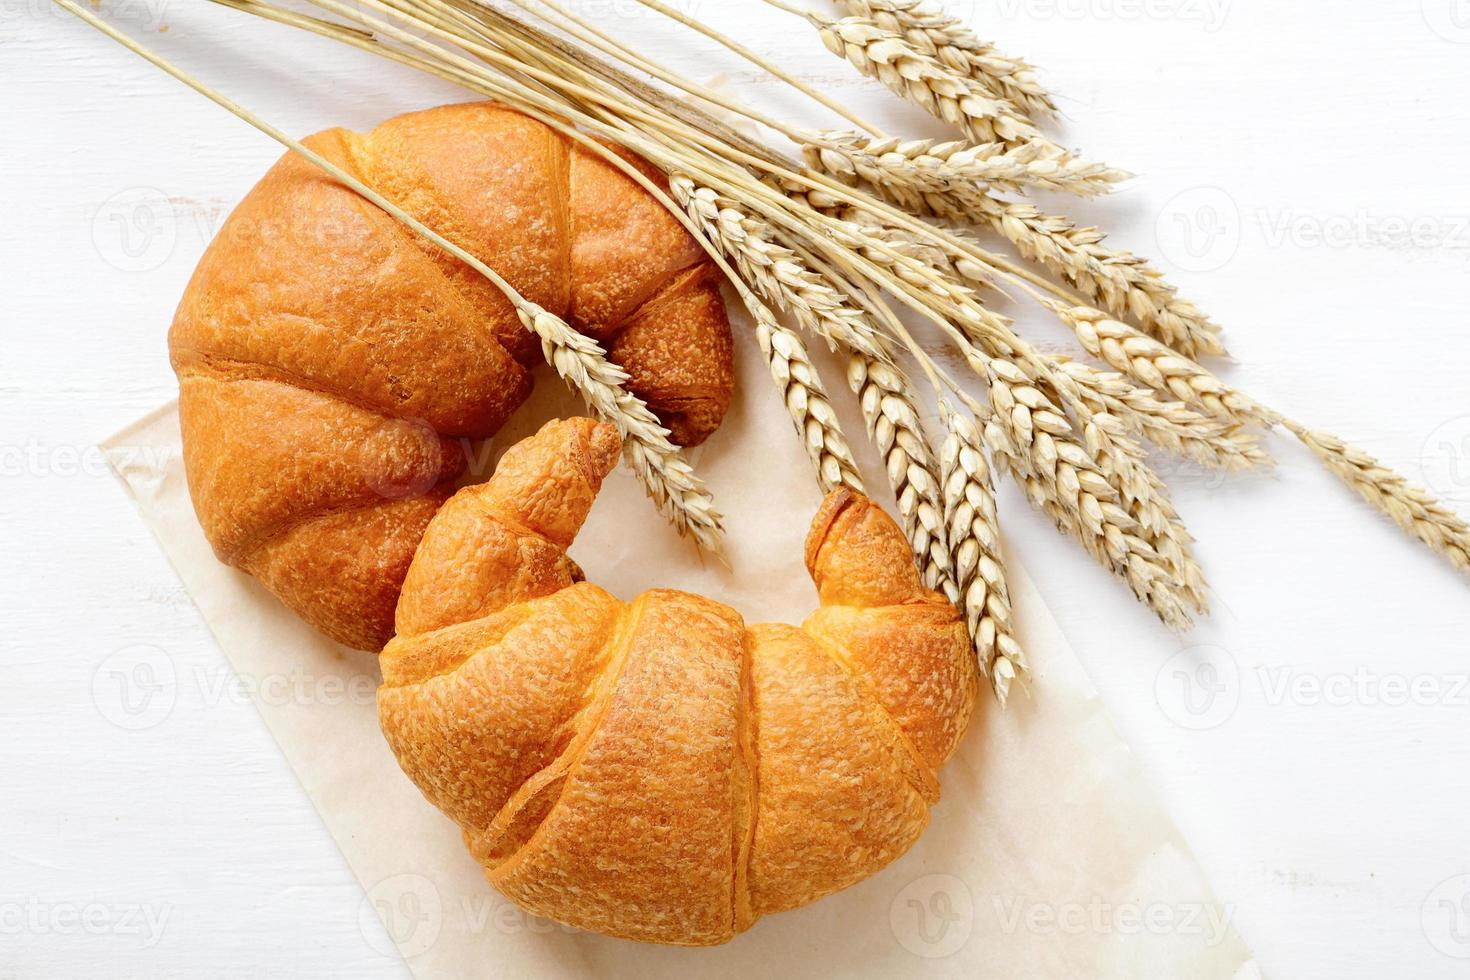 Crispy French croissant with spikelets of wheat photo